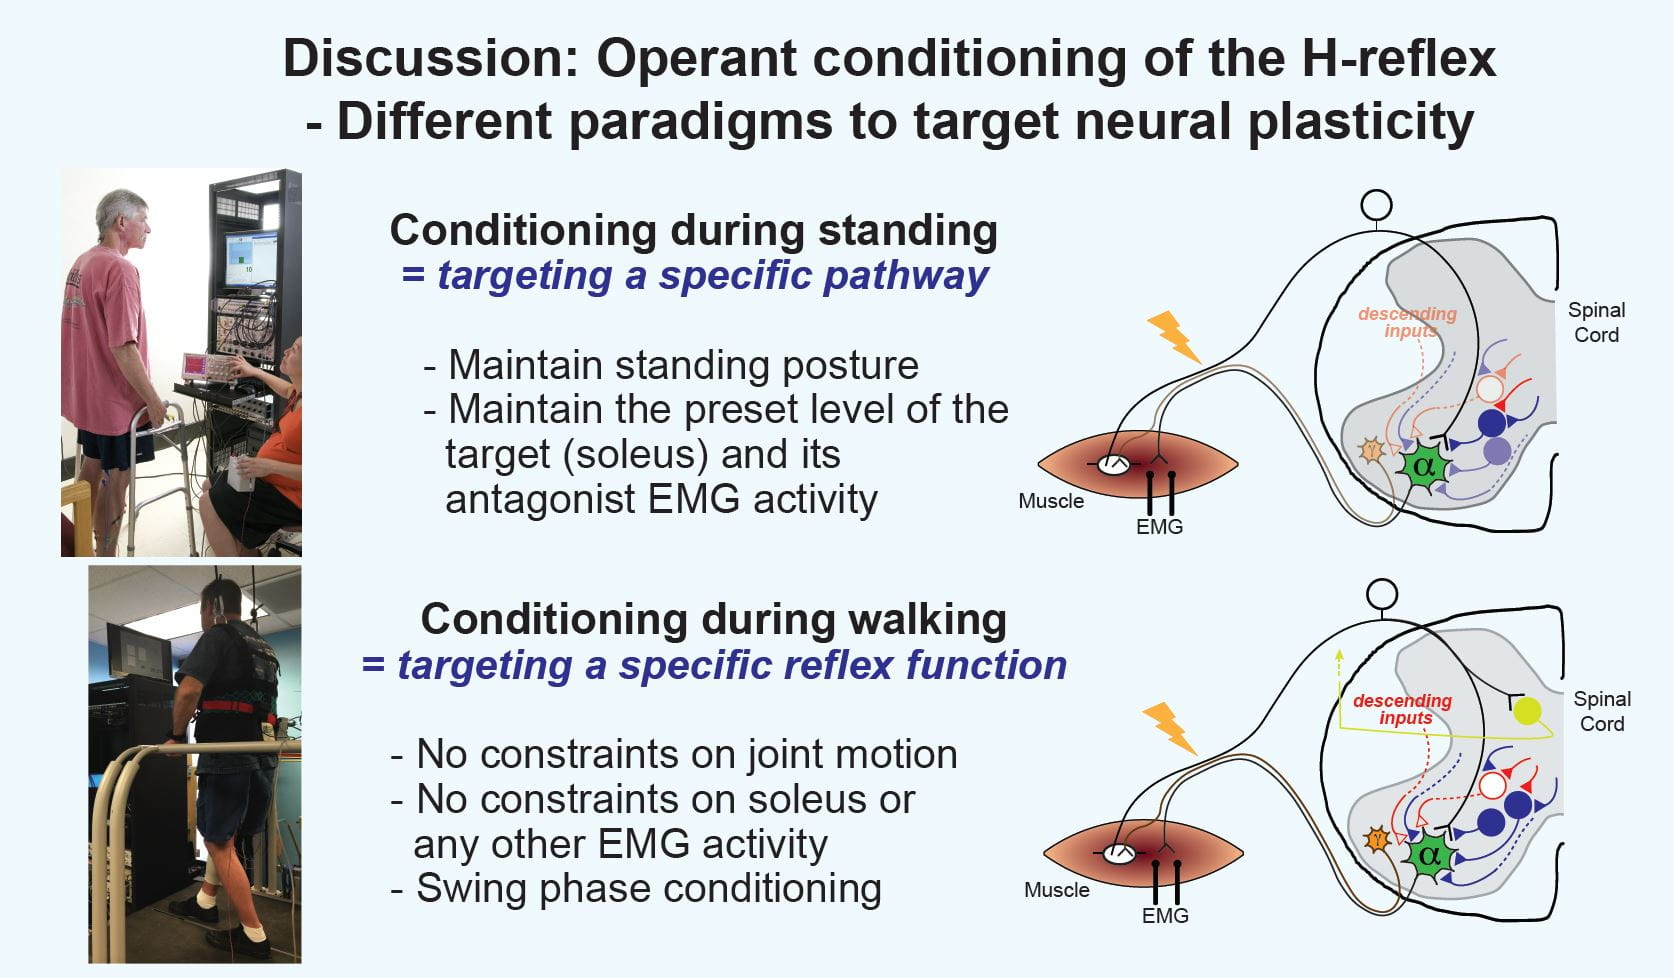 Operant conditioning of the H-reflex uses different paradigms to target neural plasticity. Conditioning during standing results in targeting a specific pathway. The standing posture and the level of target and antagonist EMG activity must be maintained. Conditioning during walking results in targeting a specific reflex function. There are no constraints on joint motion or EMG activity.